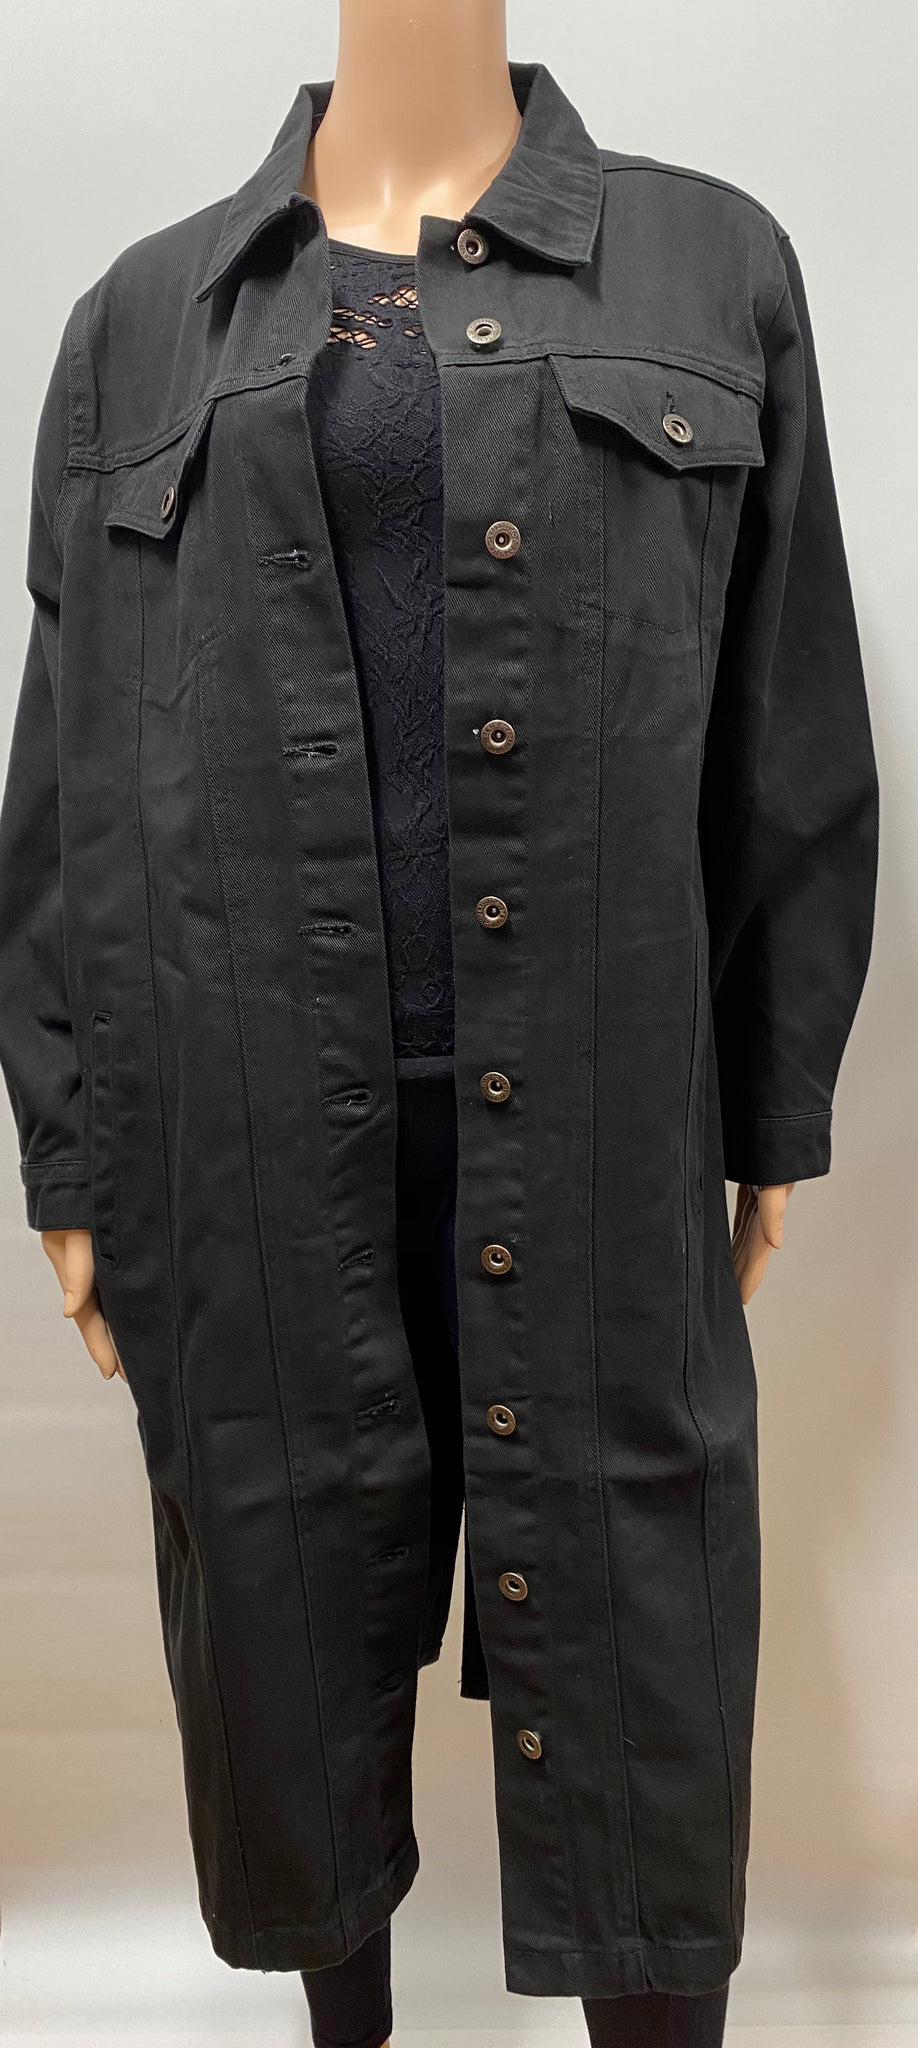 Long Black Denim Jacket